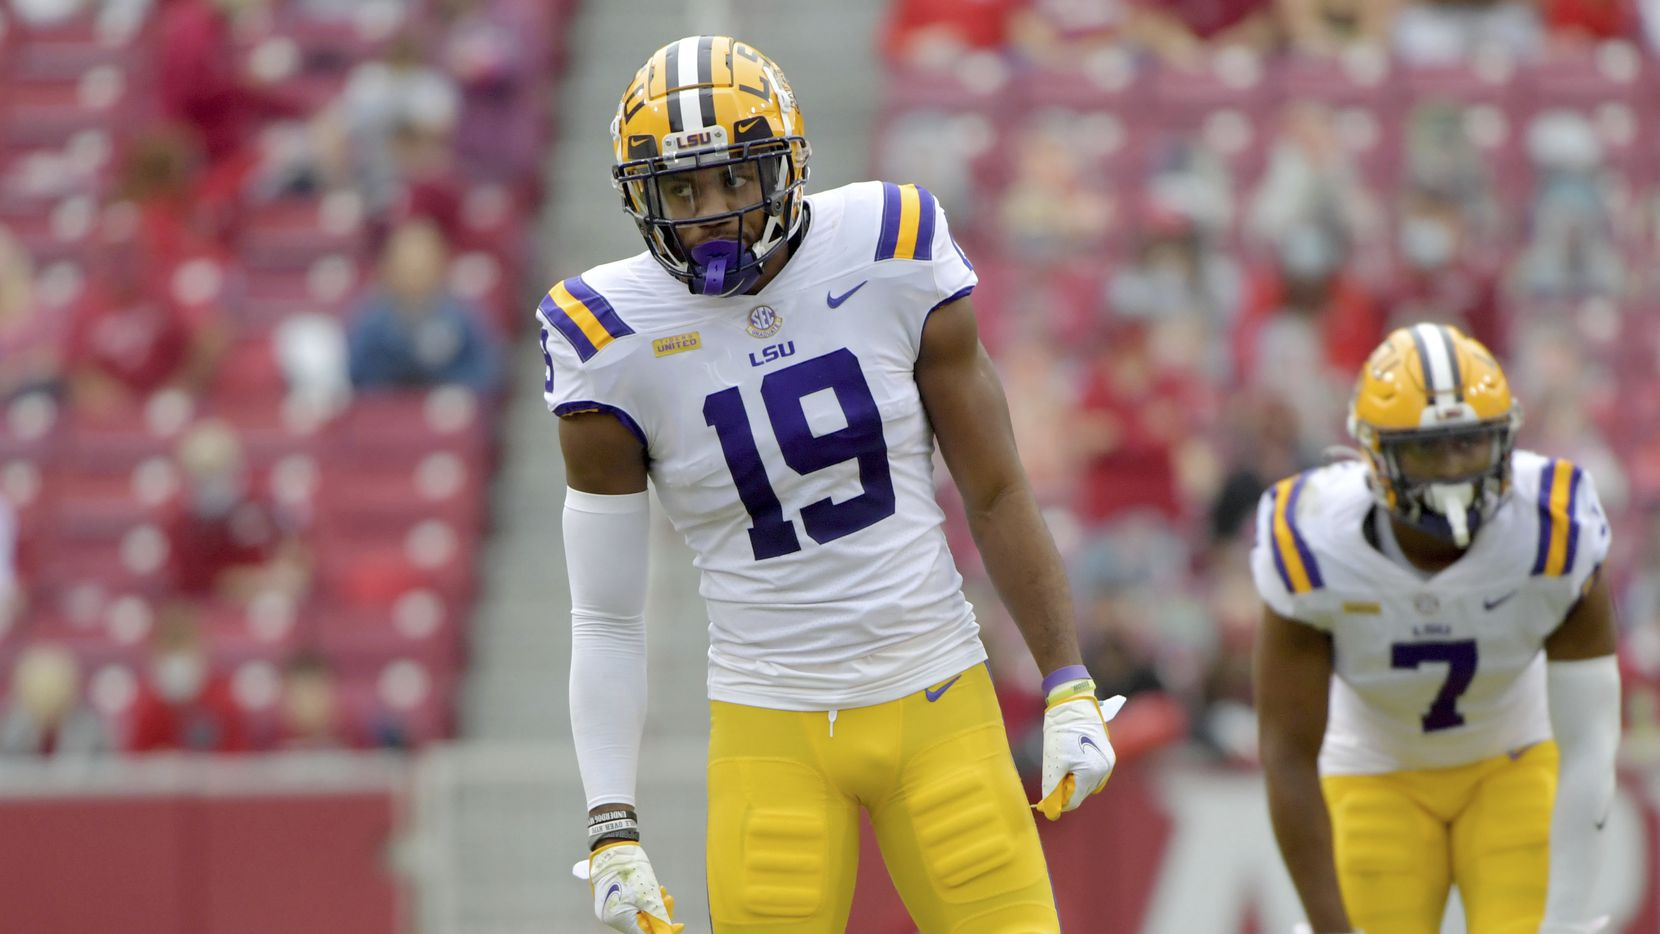 LSU defensive back Jabril Cox (19) against Arkansas during an NCAA college football game Saturday, Nov. 21, 2020, in Fayetteville, Ark.